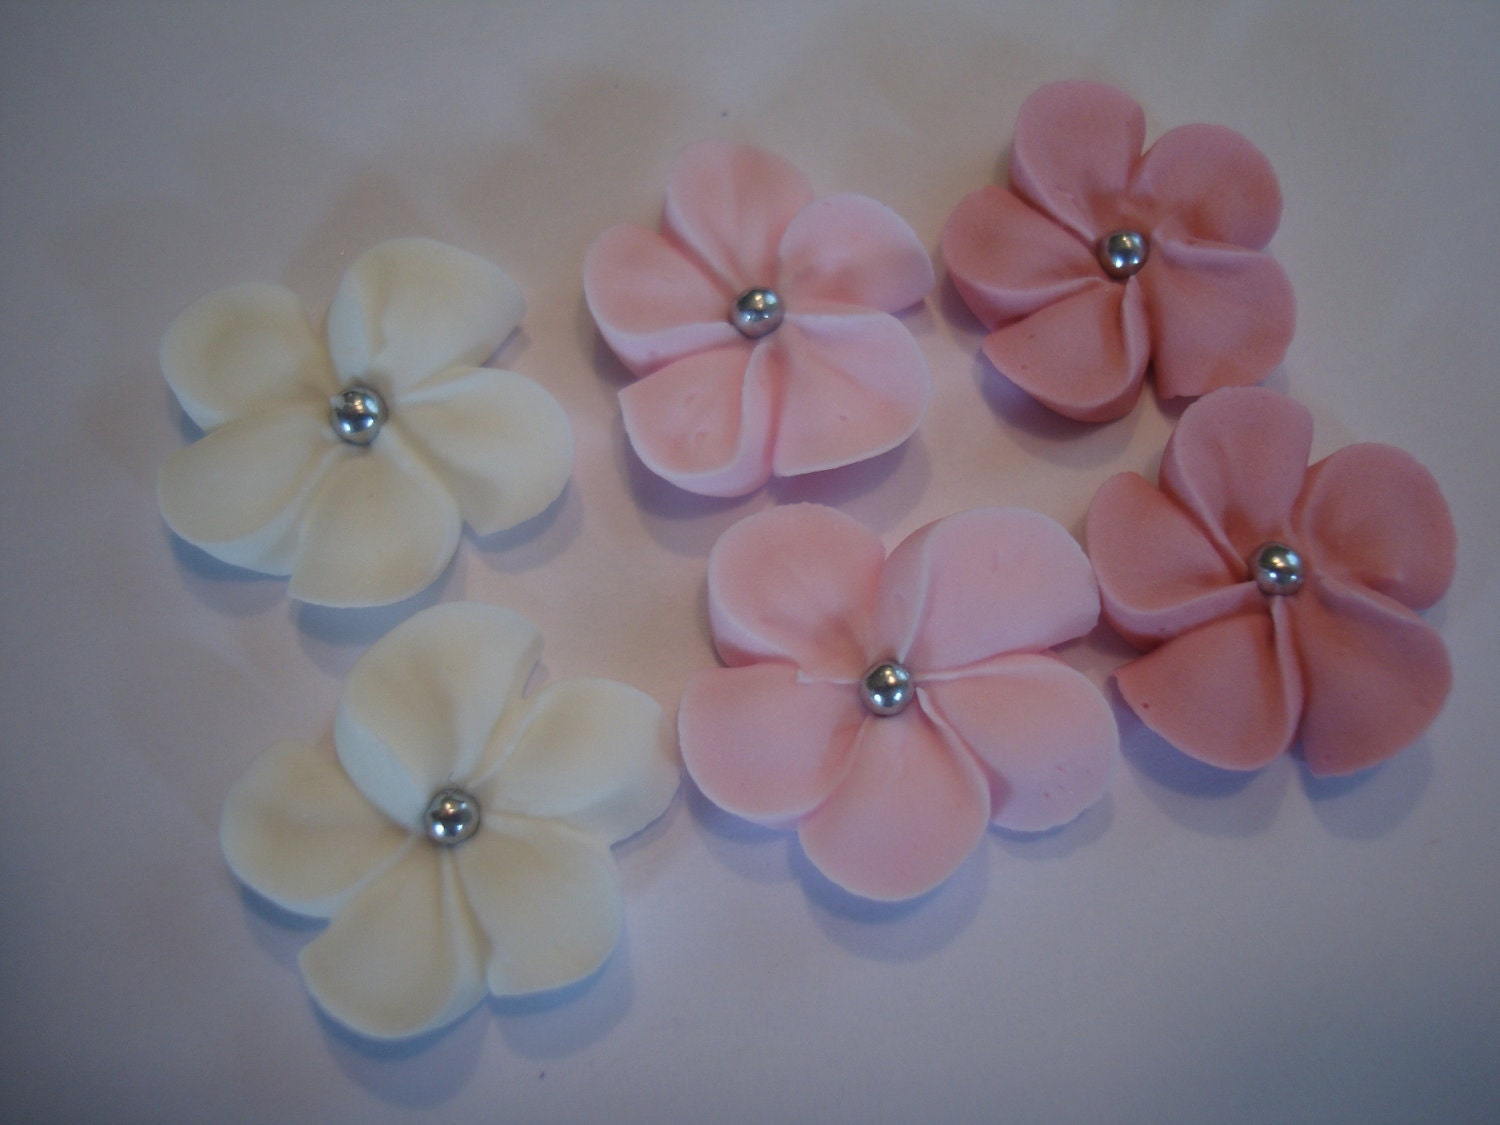 Cake Decorating Ideas With Icing Flowers : LOT of 100 Royal Icing flowers for Cake Decorating by mochasof